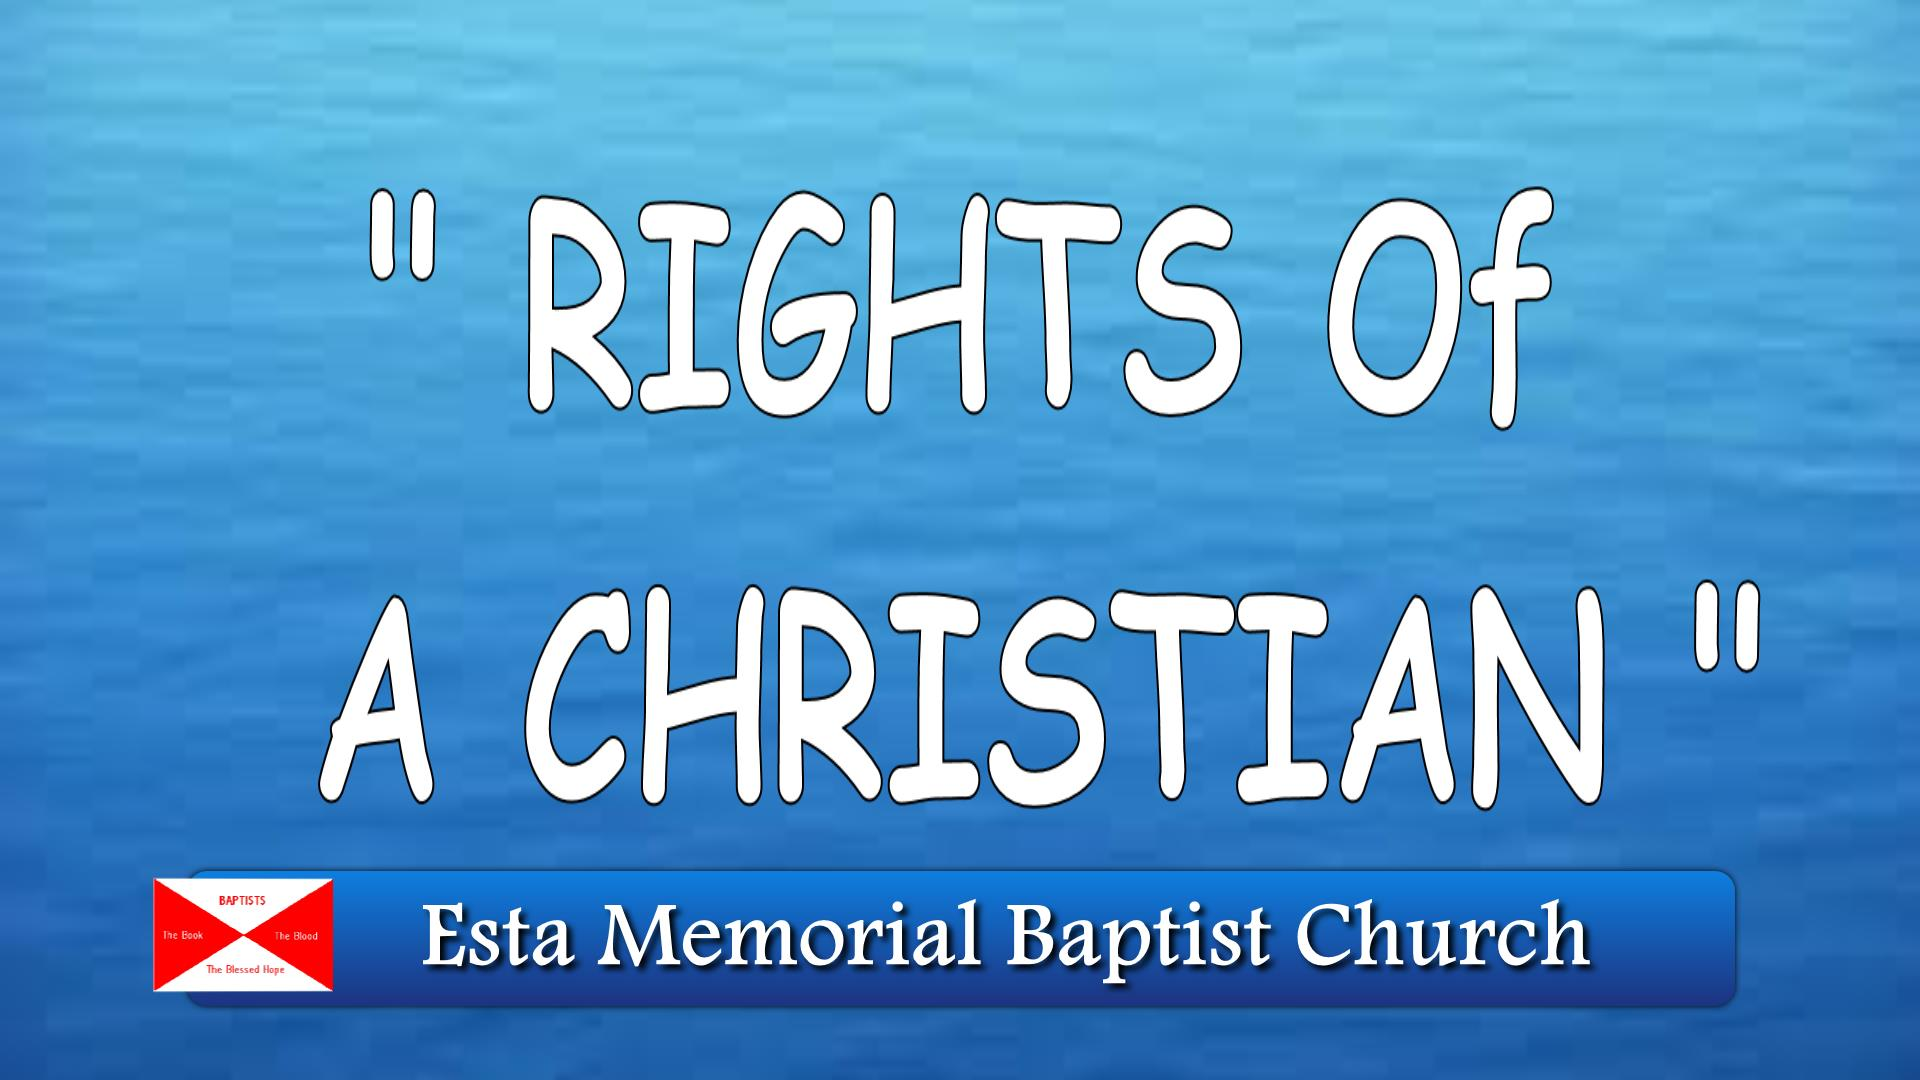 RIGHTS OF A CHRISTIAN